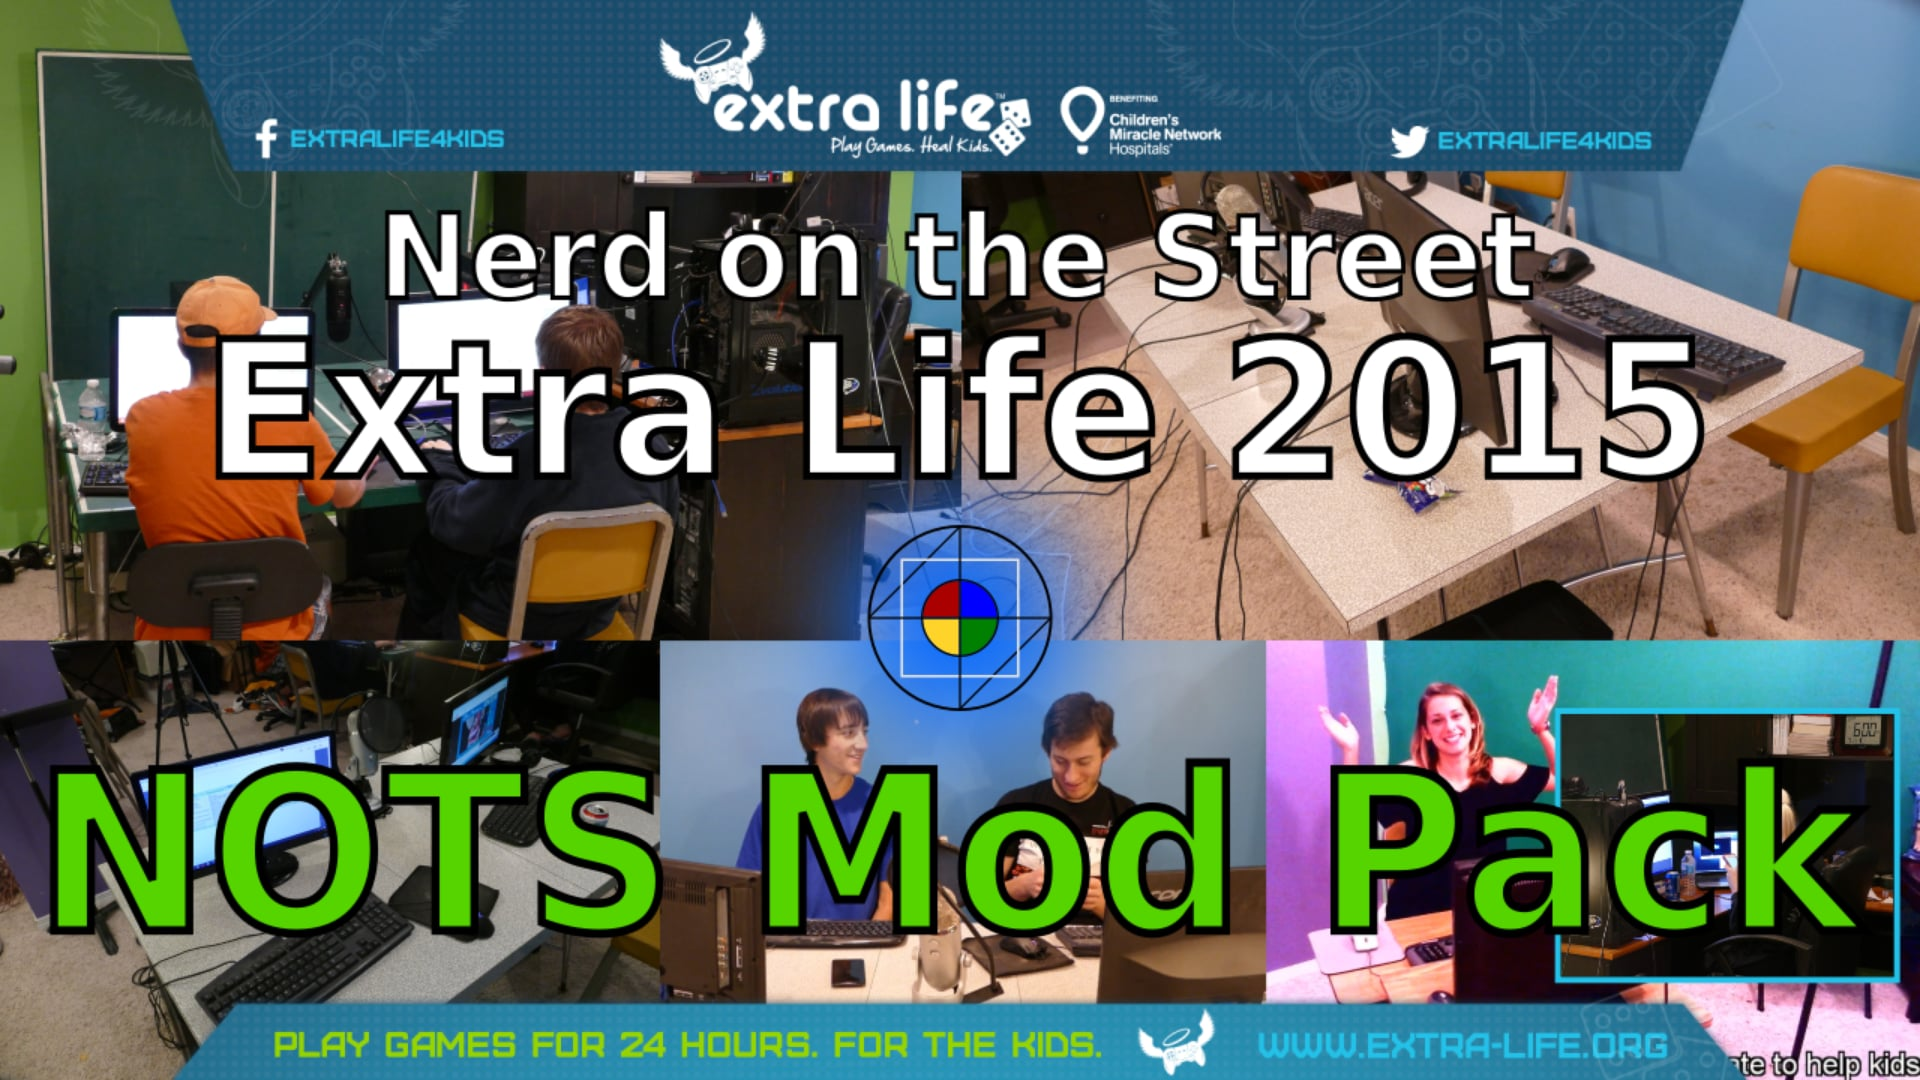 NOTS Mod Pack - Extra Life 2015